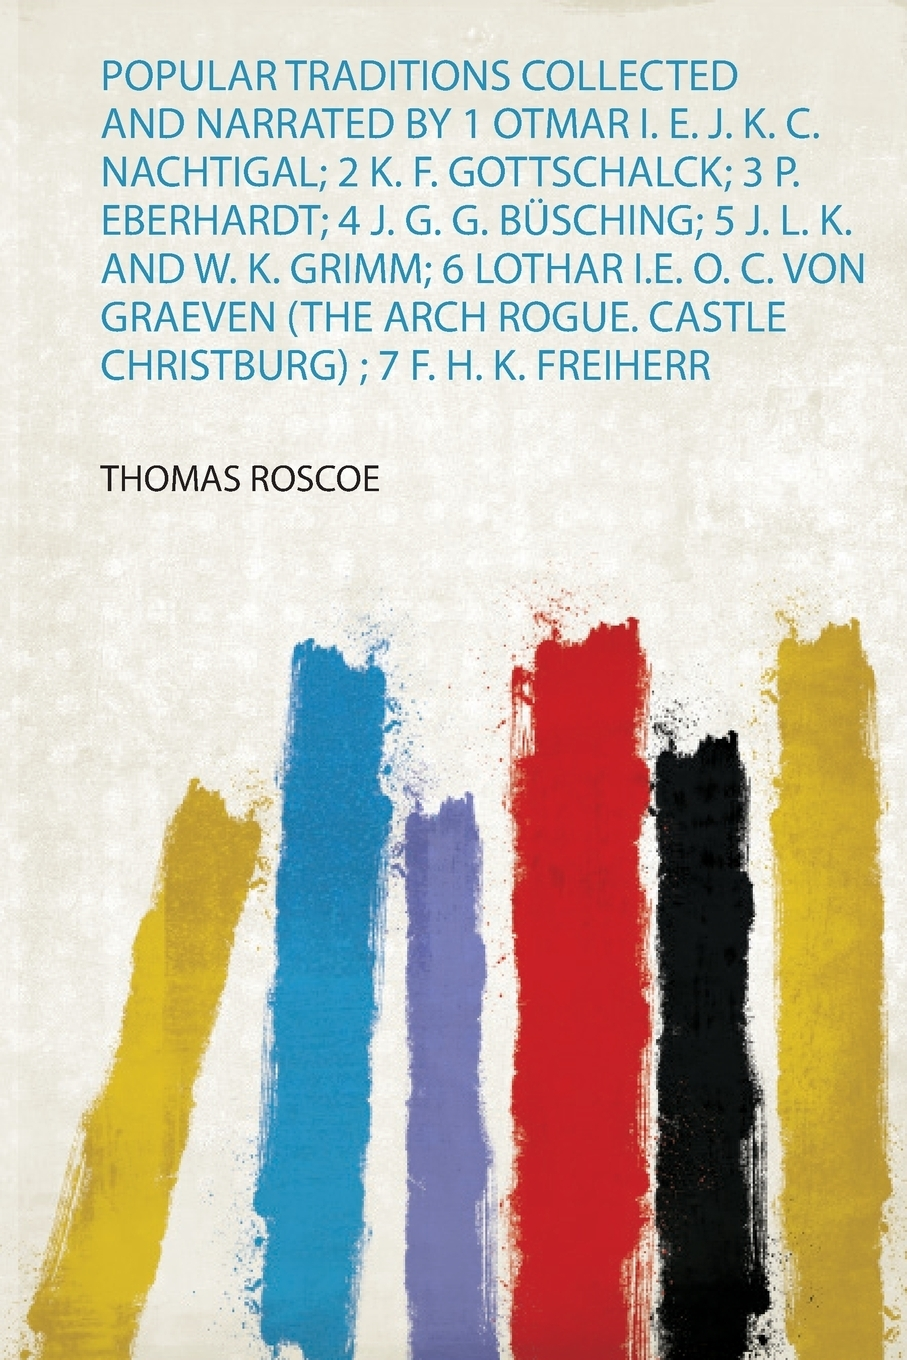 Popular Traditions Collected and Narrated by 1 Otmar I. E. J. K. C. Nachtigal; 2 K. F. Gottschalck; 3 P. Eberhardt; 4 J. G. G. Busching; 5 J. L. K. and W. K. Grimm; 6 Lothar I.E. O. C. Von Graeven (The Arch Rogue. Castle Christburg) ; 7 F. H. K. F... k j gaul 5 melodies op 1